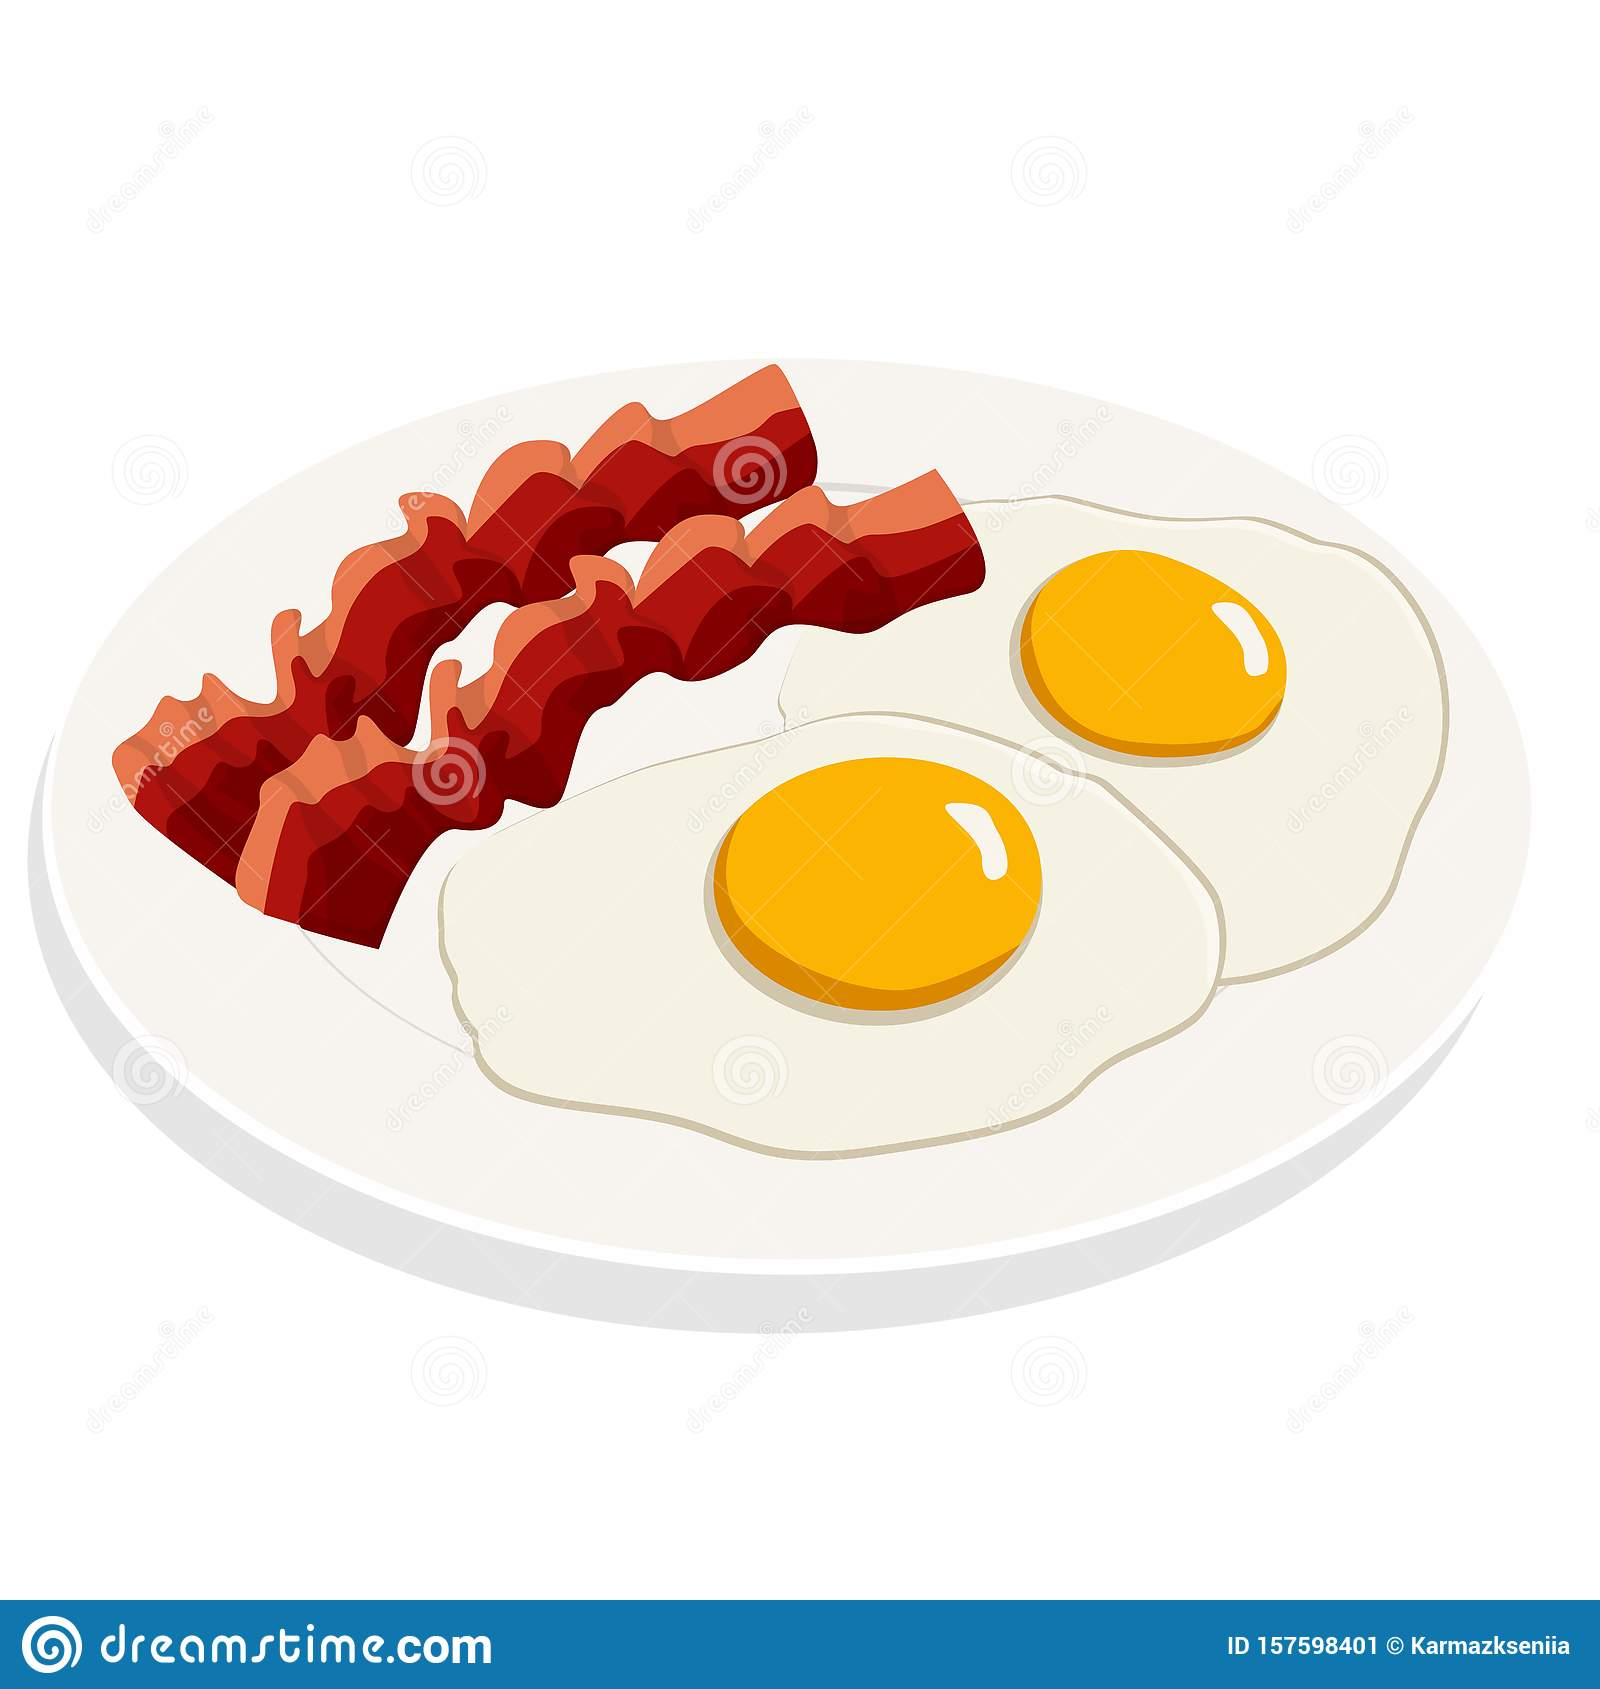 Fried Eggs With Bacon Breakfast On White Plate Flat Vector Illustration Stock Vector Illustration Of Cooked Gourmet 157598401